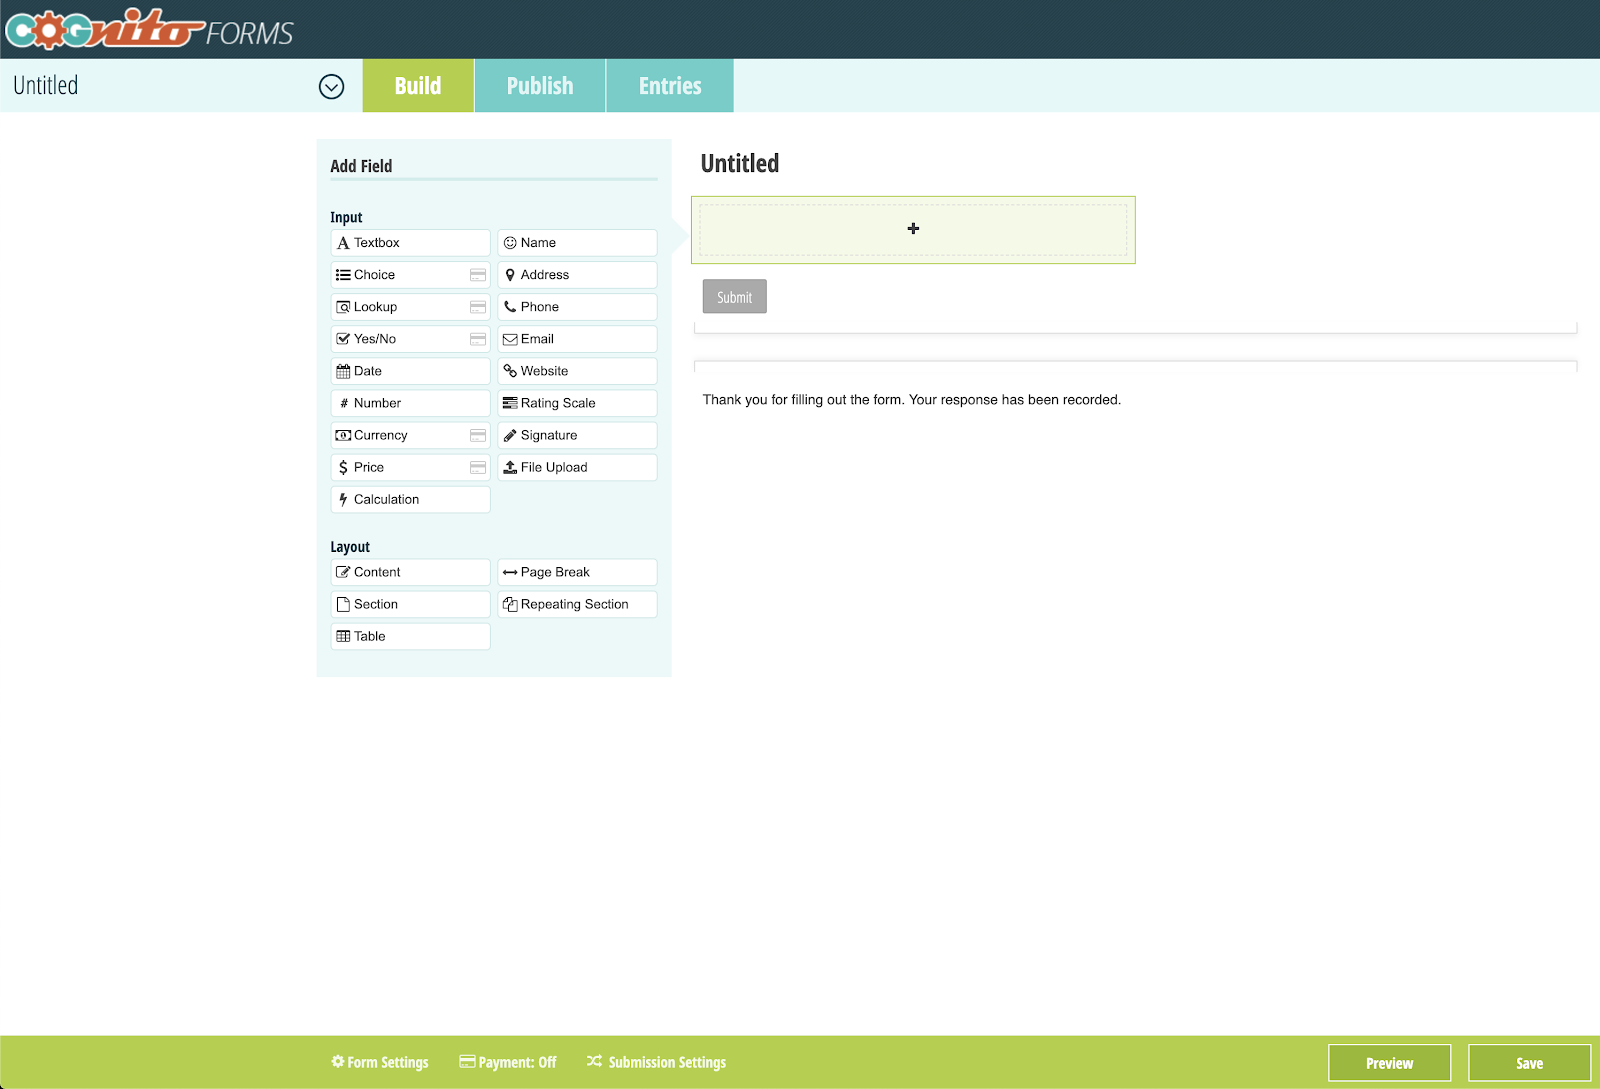 Cognito Forms online form builder